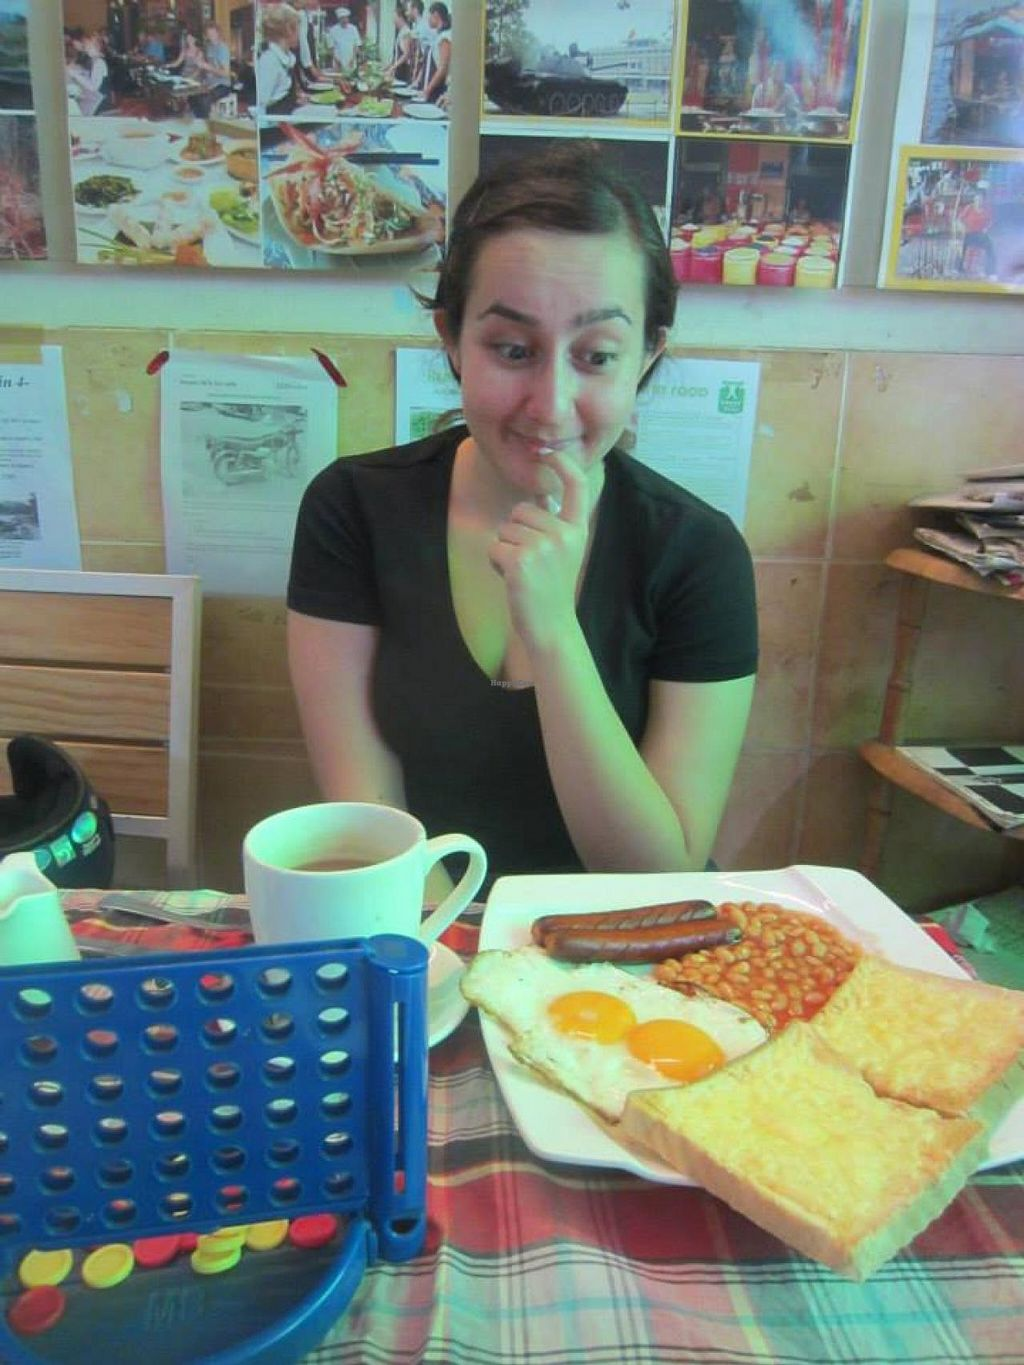 """Photo of Bookworm's Coffee  by <a href=""""/members/profile/Kimxula"""">Kimxula</a> <br/>vegetarian english breakfast at bookworm's <br/> May 31, 2015  - <a href='/contact/abuse/image/52690/104287'>Report</a>"""